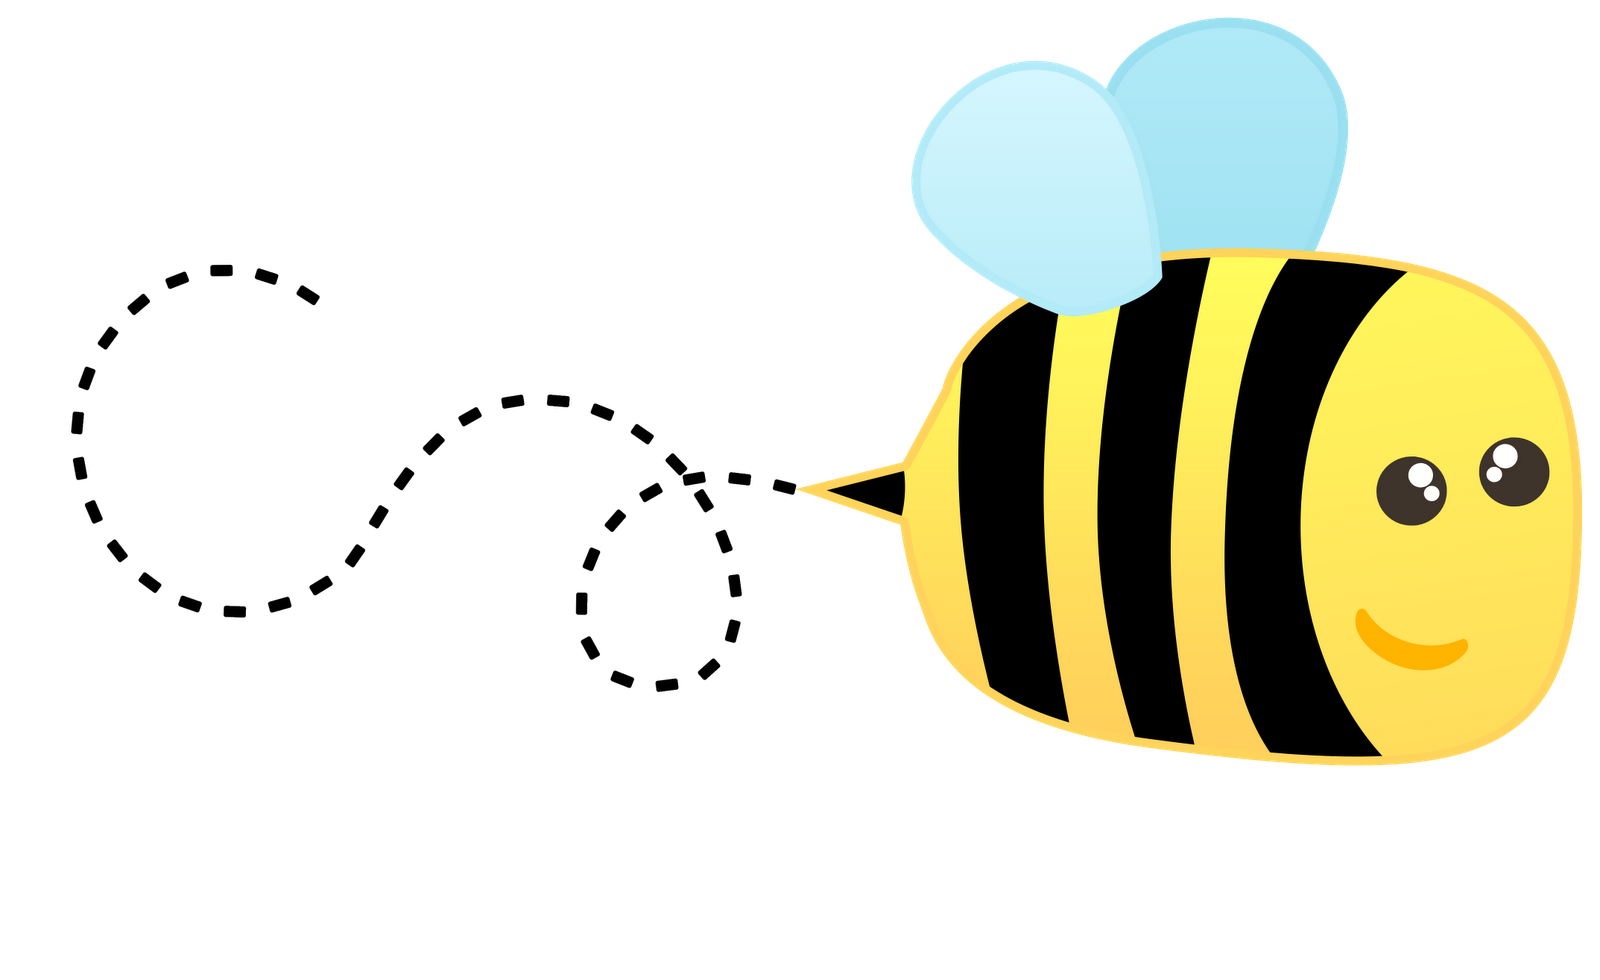 Bumblebee svg #2, Download drawings